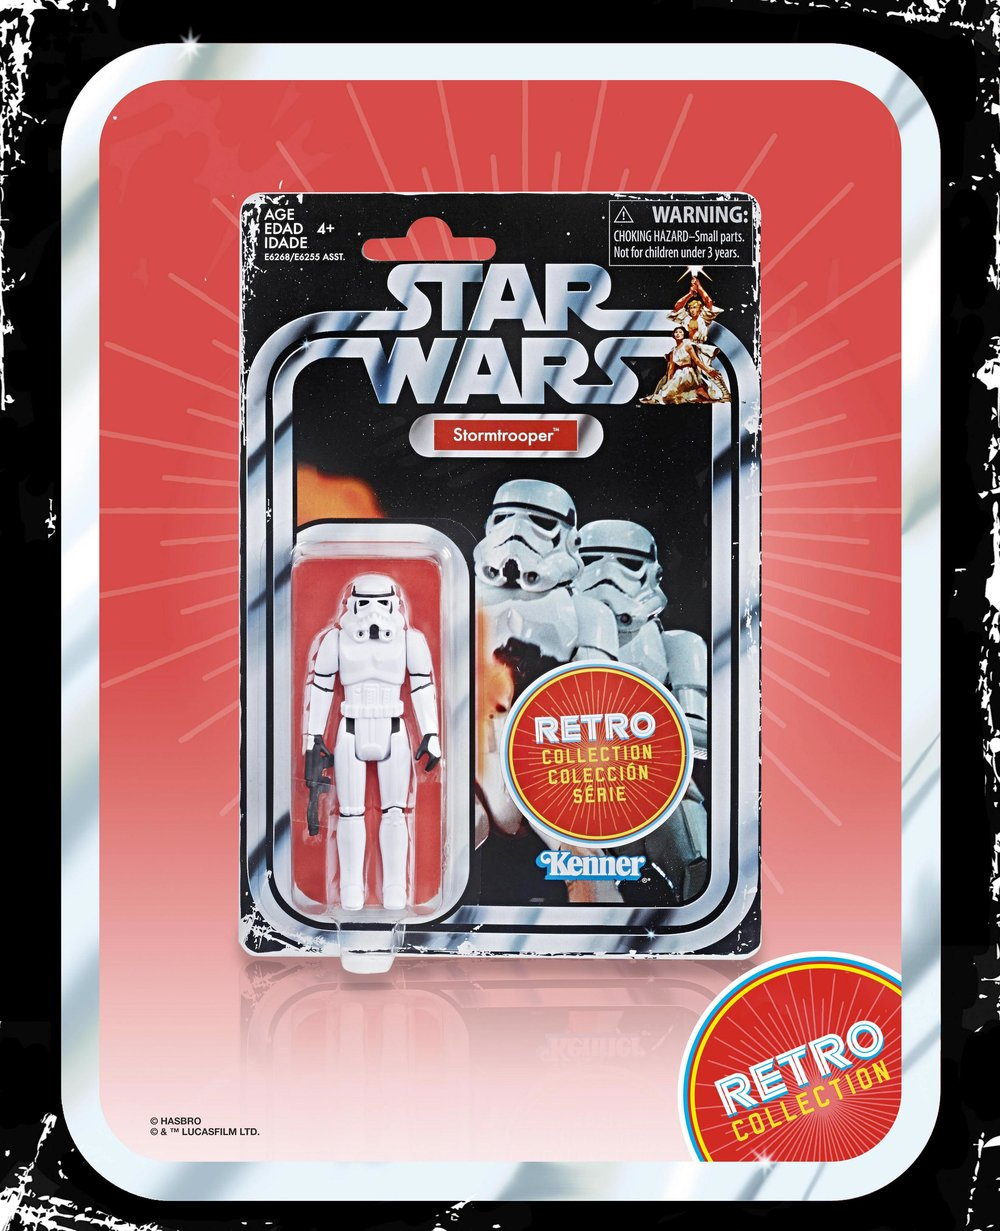 Hasbro - Star Wars Retro Collection - Chewbacca, Darth Vader, Han Solo, Luke Skywalker, Princess Leia, Stormtrooper (2019 Wave 1 Set of 6)